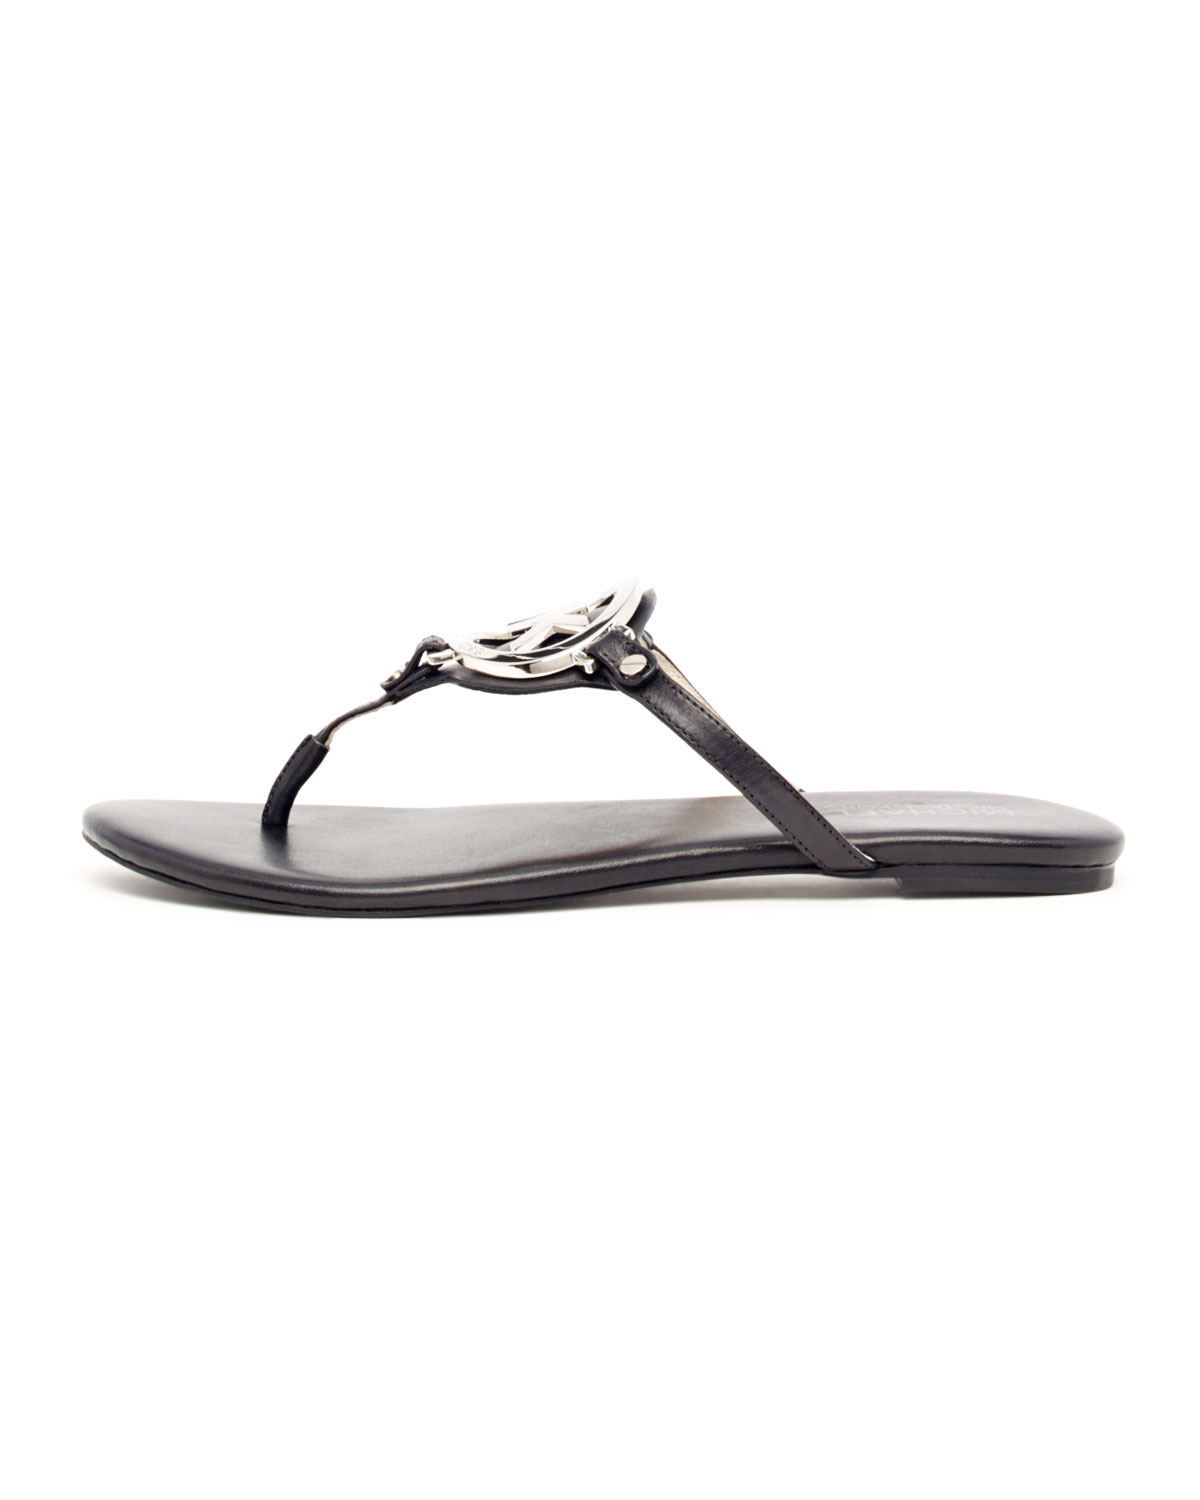 65f6bbbda48b9 Lyst - Michael Kors Melodie Logo Thong Sandals in Black